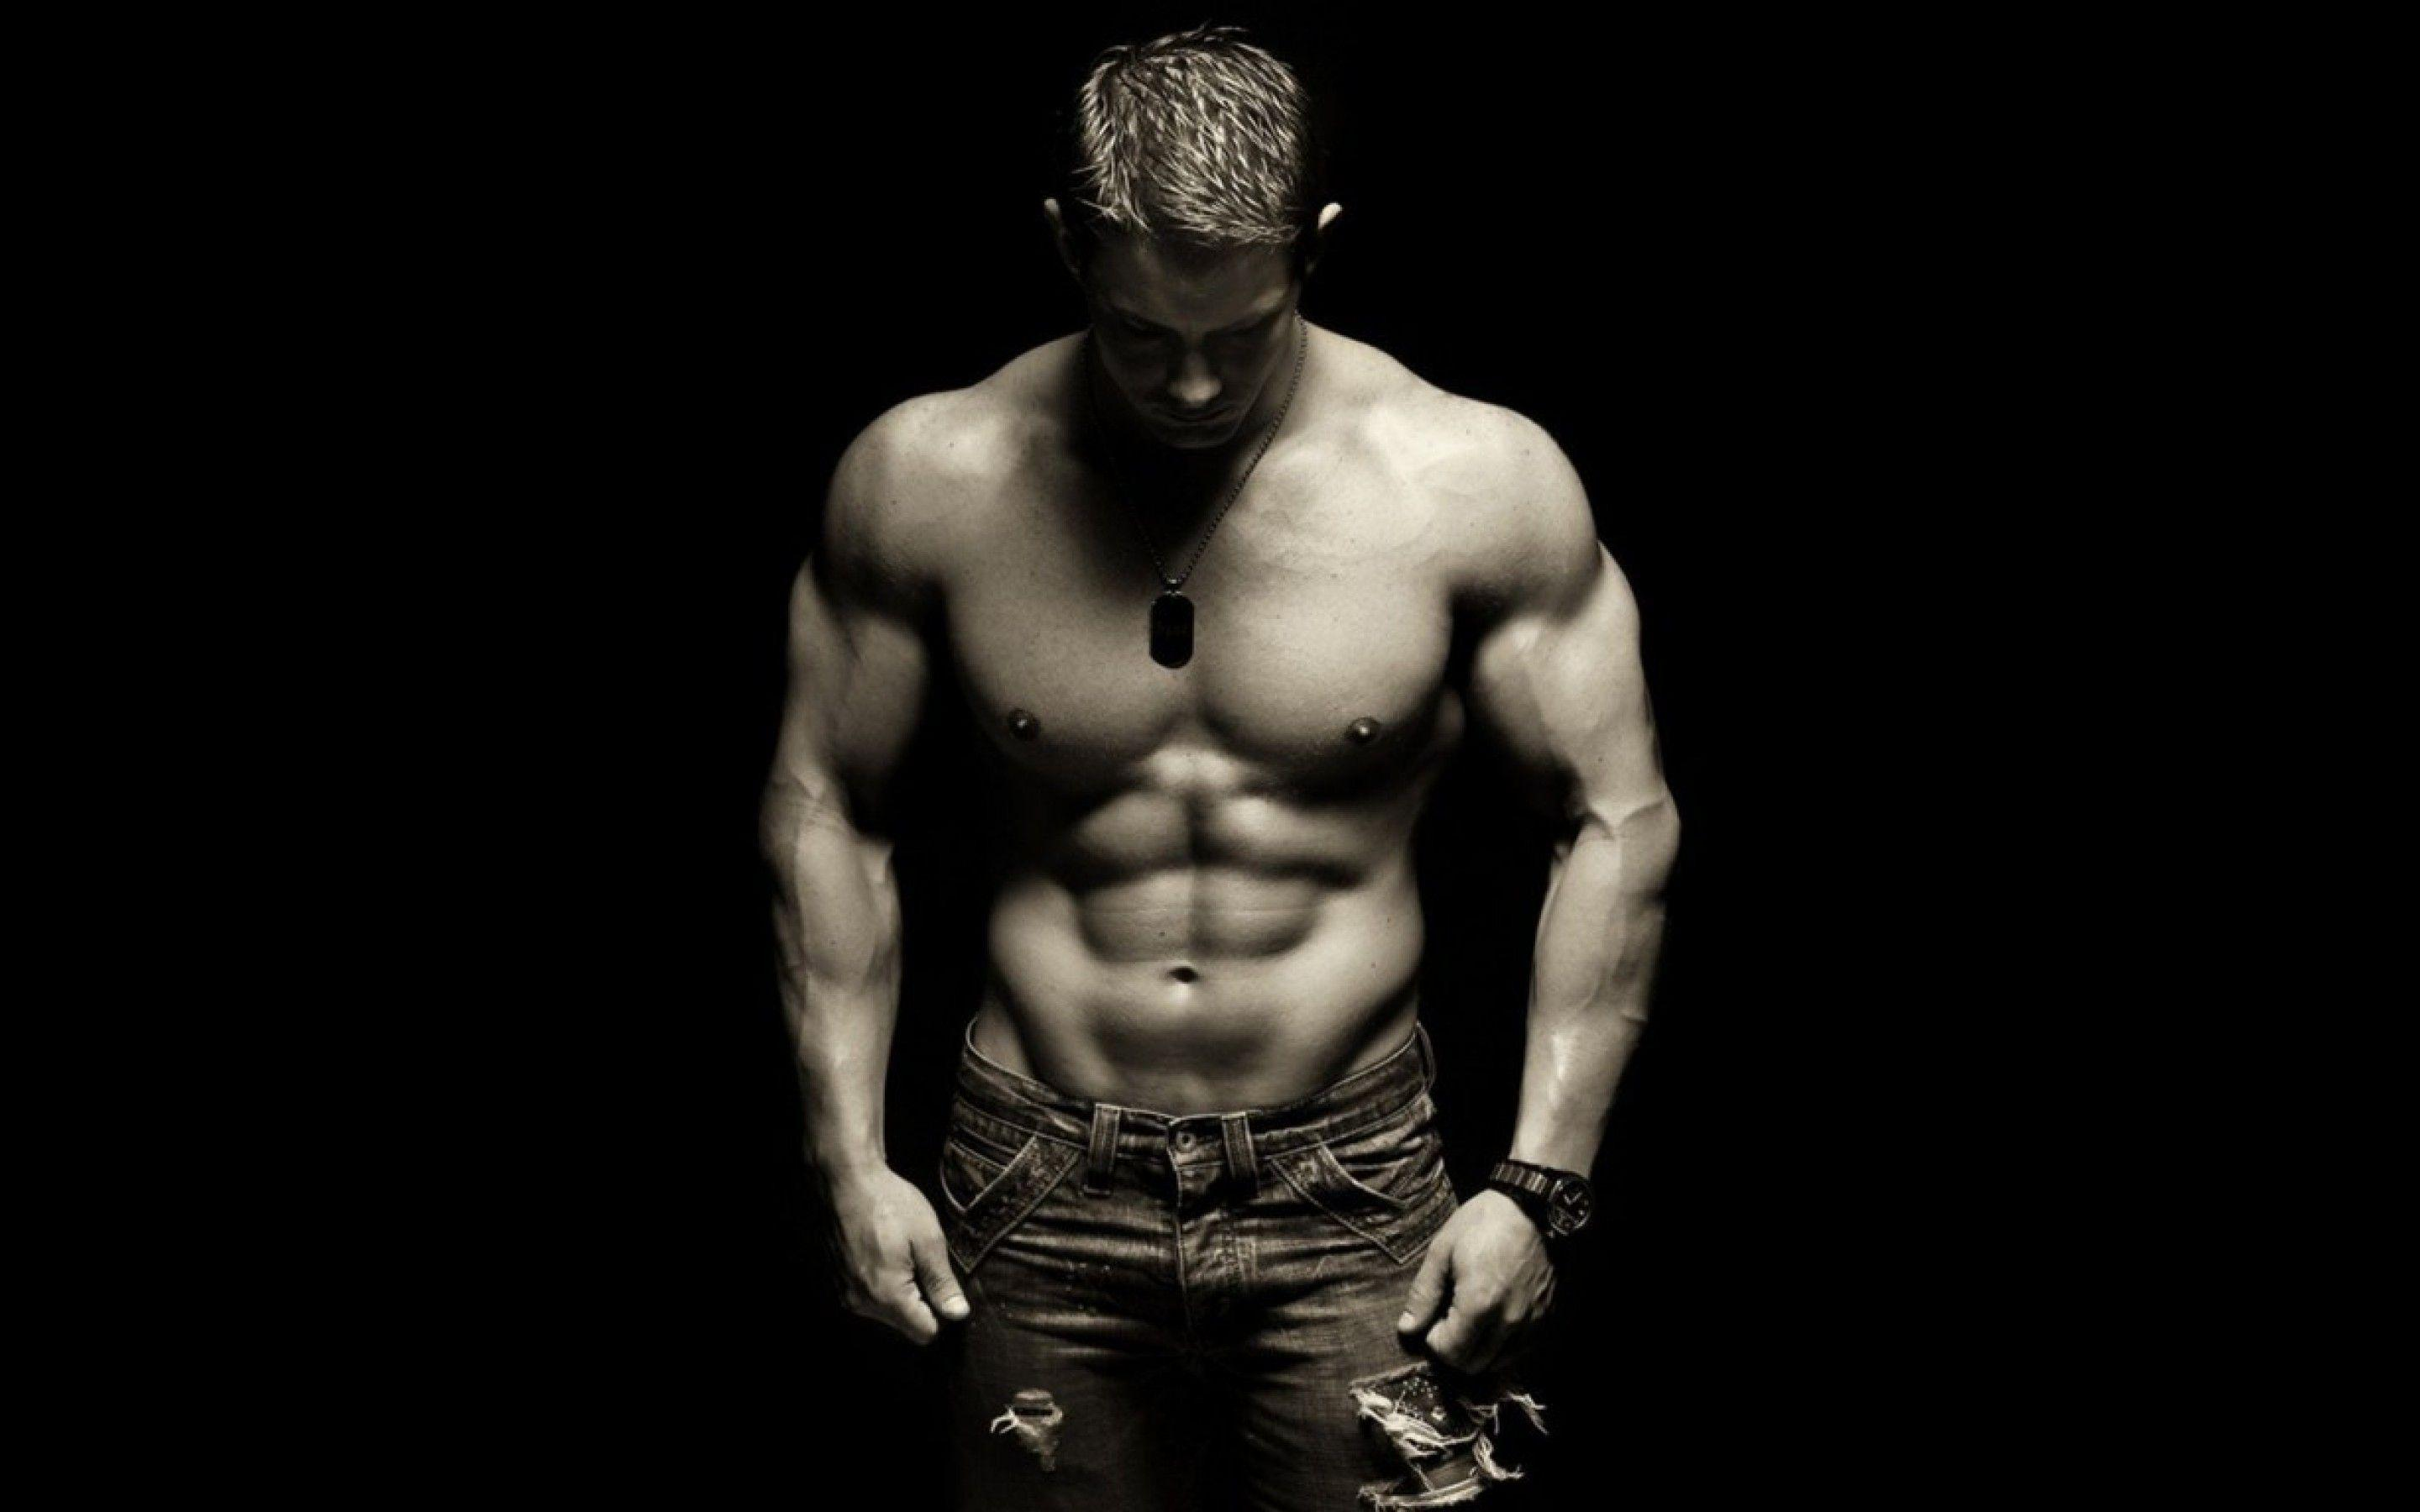 man bodybuilding wallpapers downlaod hd wallpapershappy